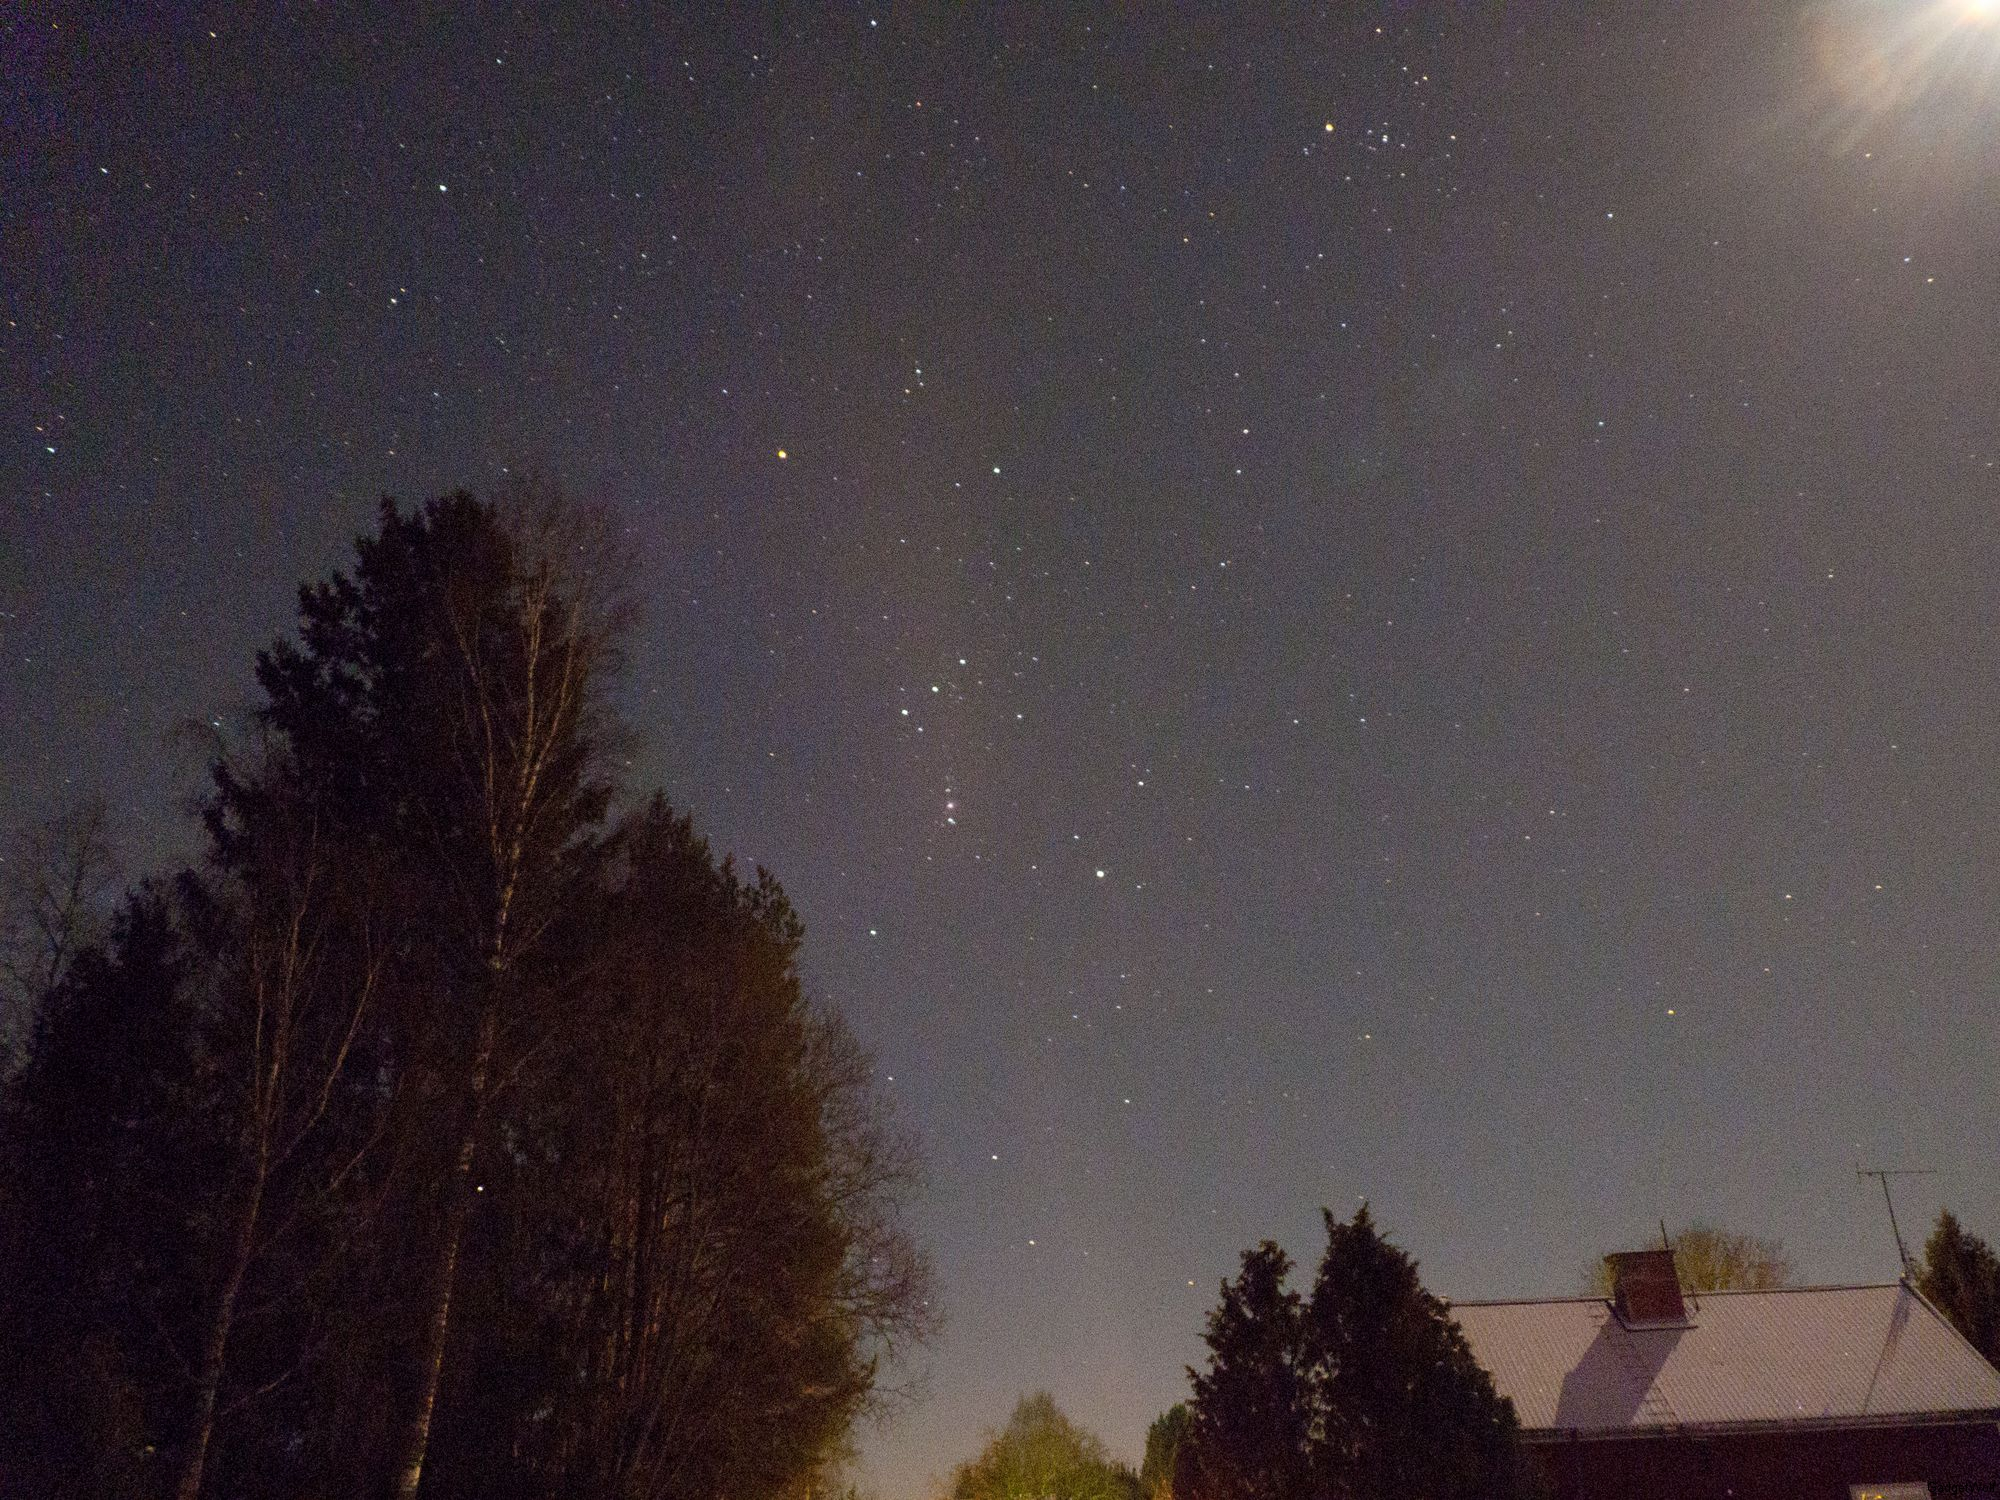 Orion and winter mooon